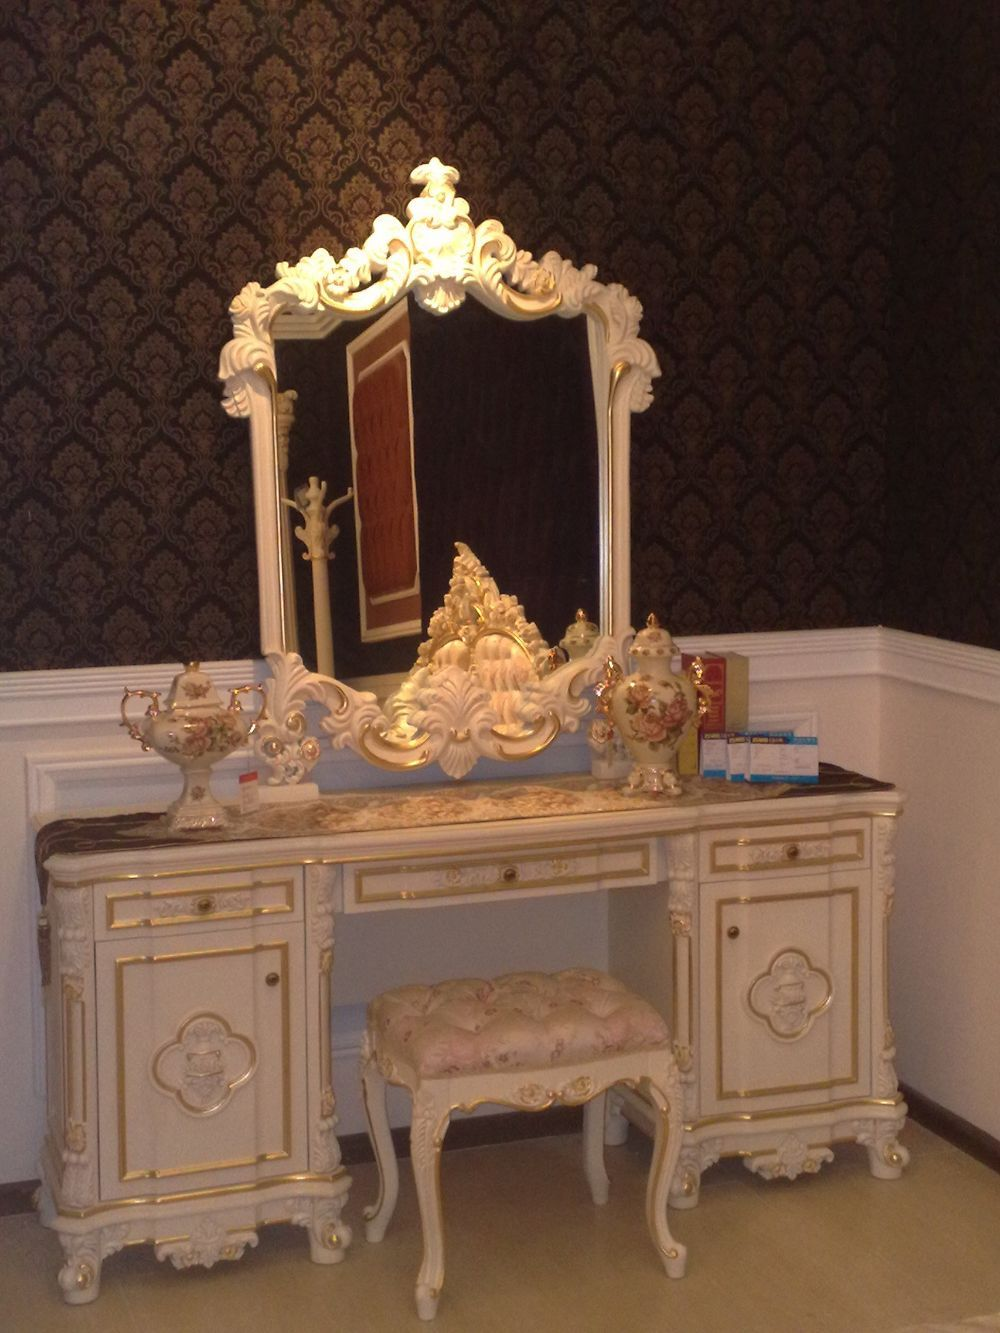 Vanity dressing table boutique boudoir style vanity fair vanity dressing table boutique boudoir style geotapseo Images